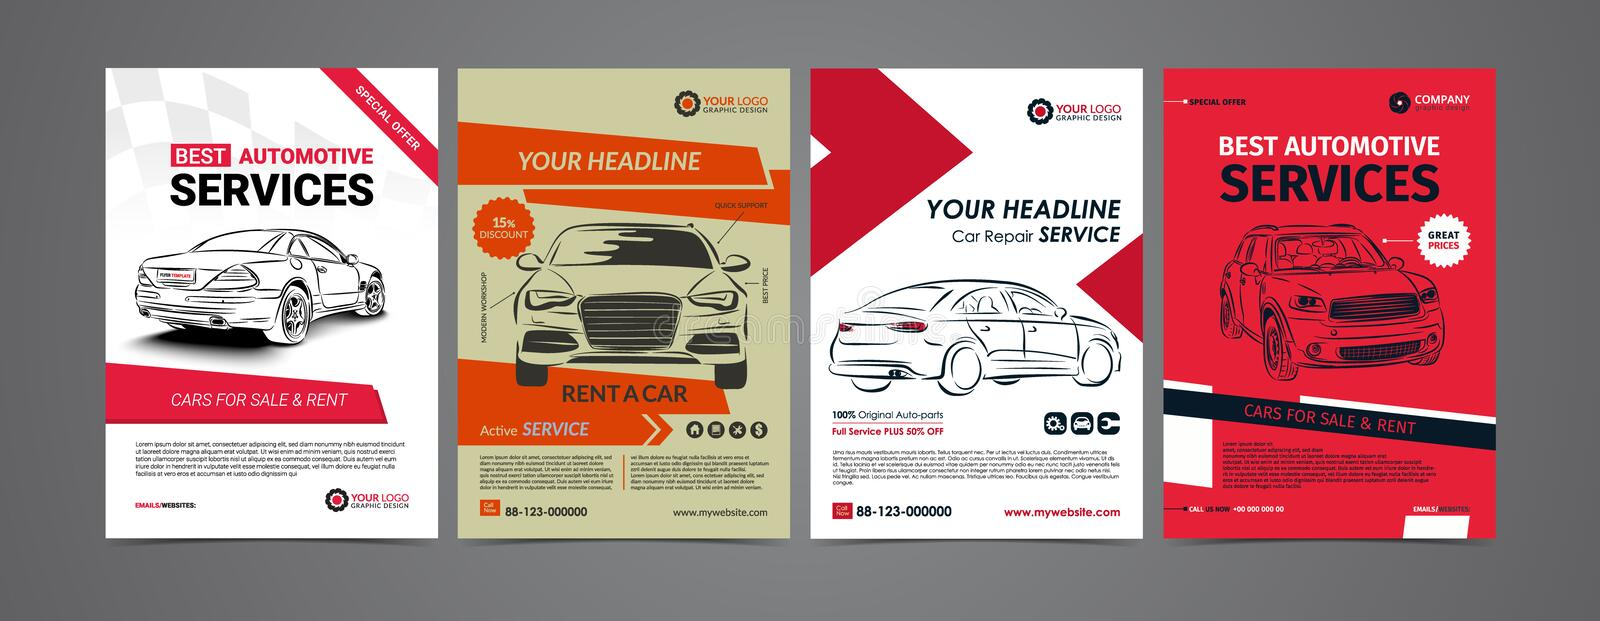 Auto repair Services business layout templates set, cars for sale royalty free illustration